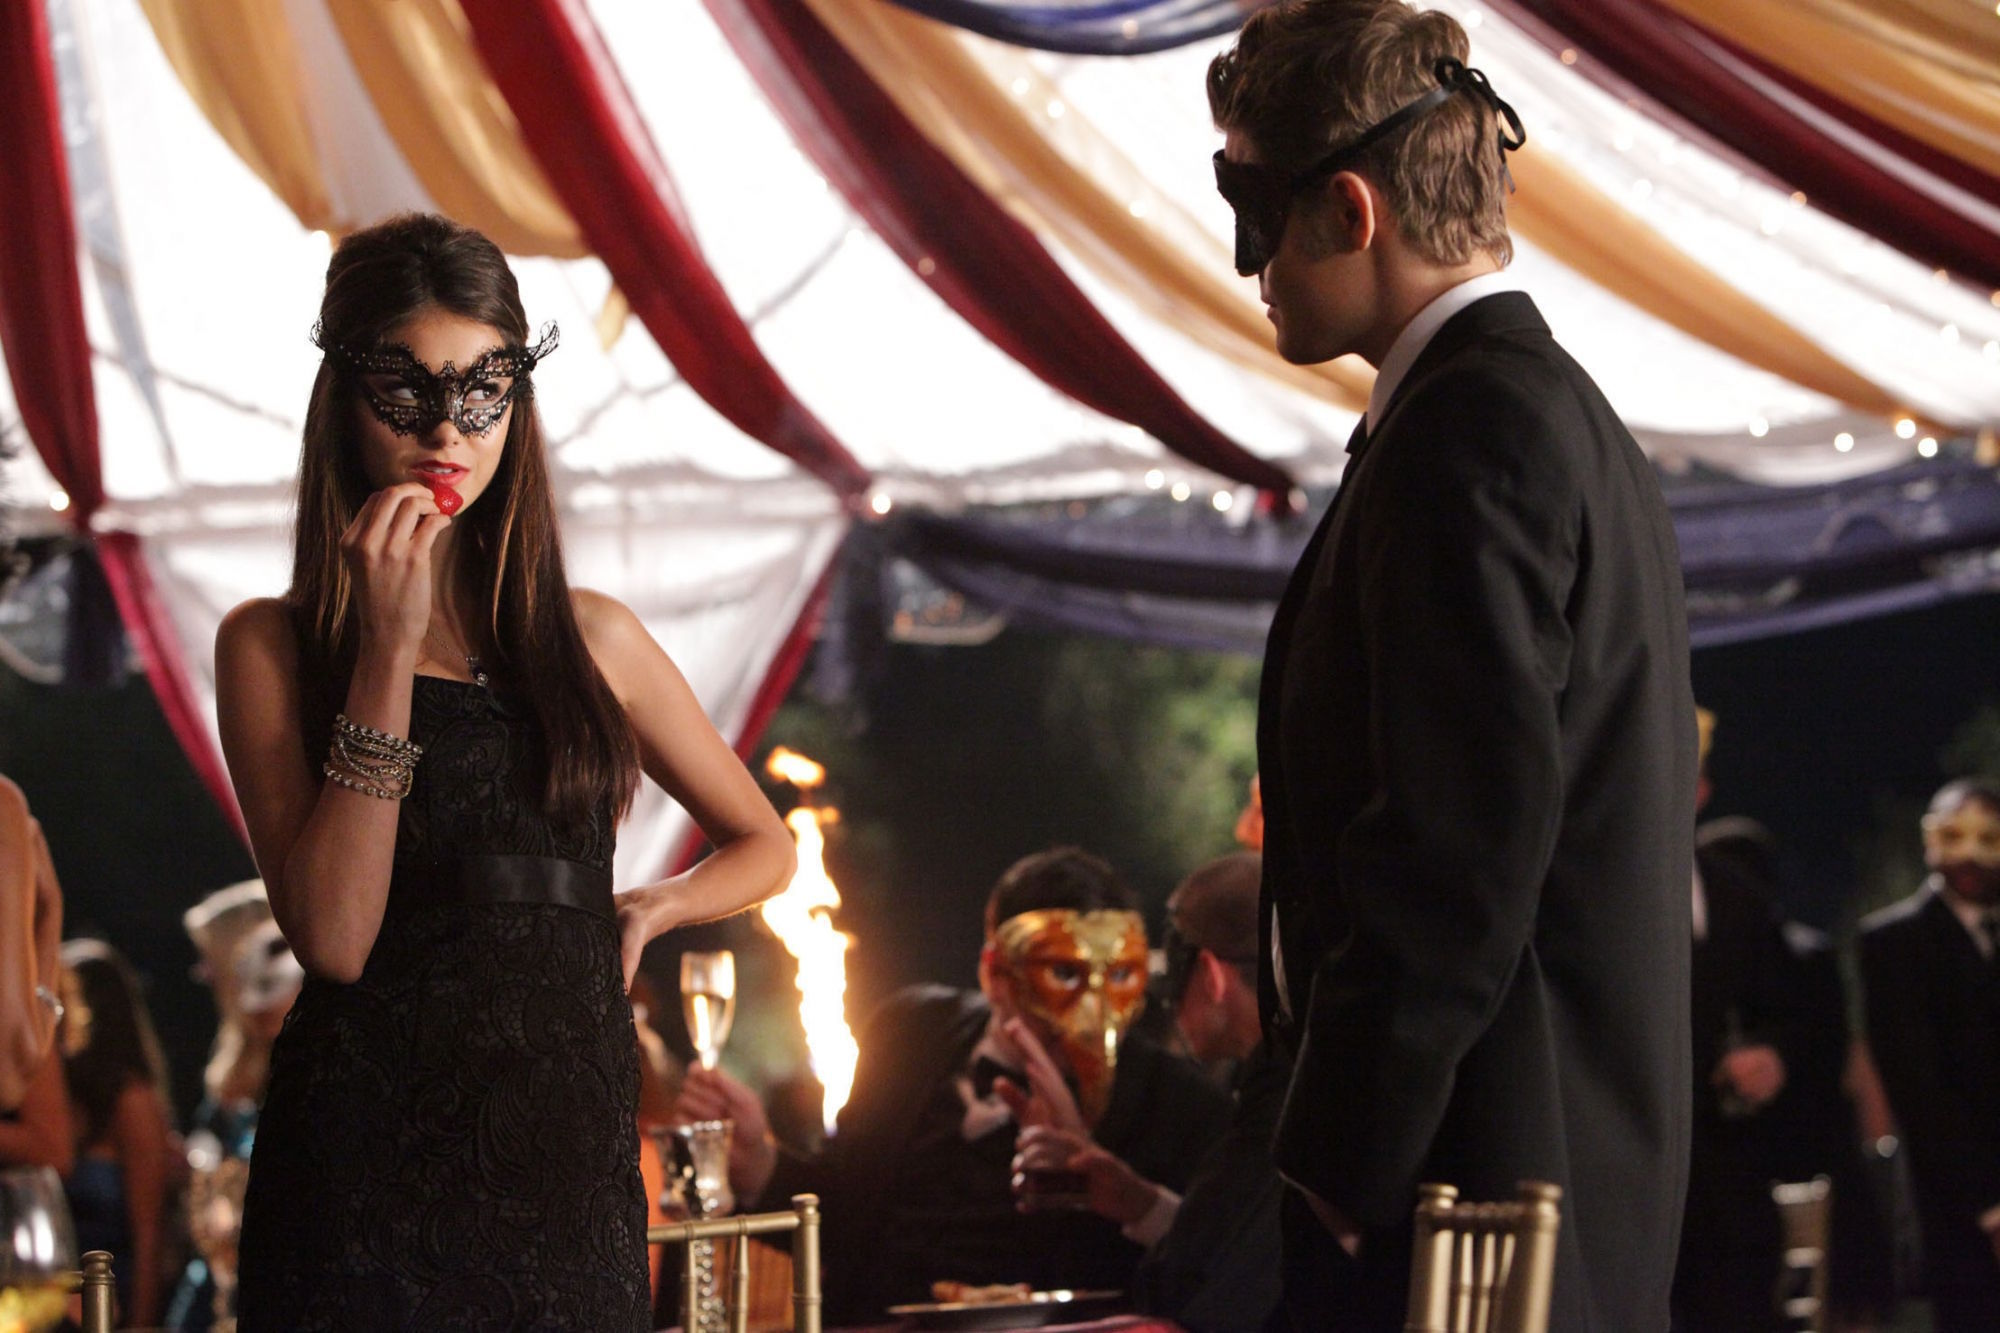 http://images4.fanpop.com/image/photos/16200000/2-07-Masquerade-the-vampire-diaries-16220622-2000-1333.jpg